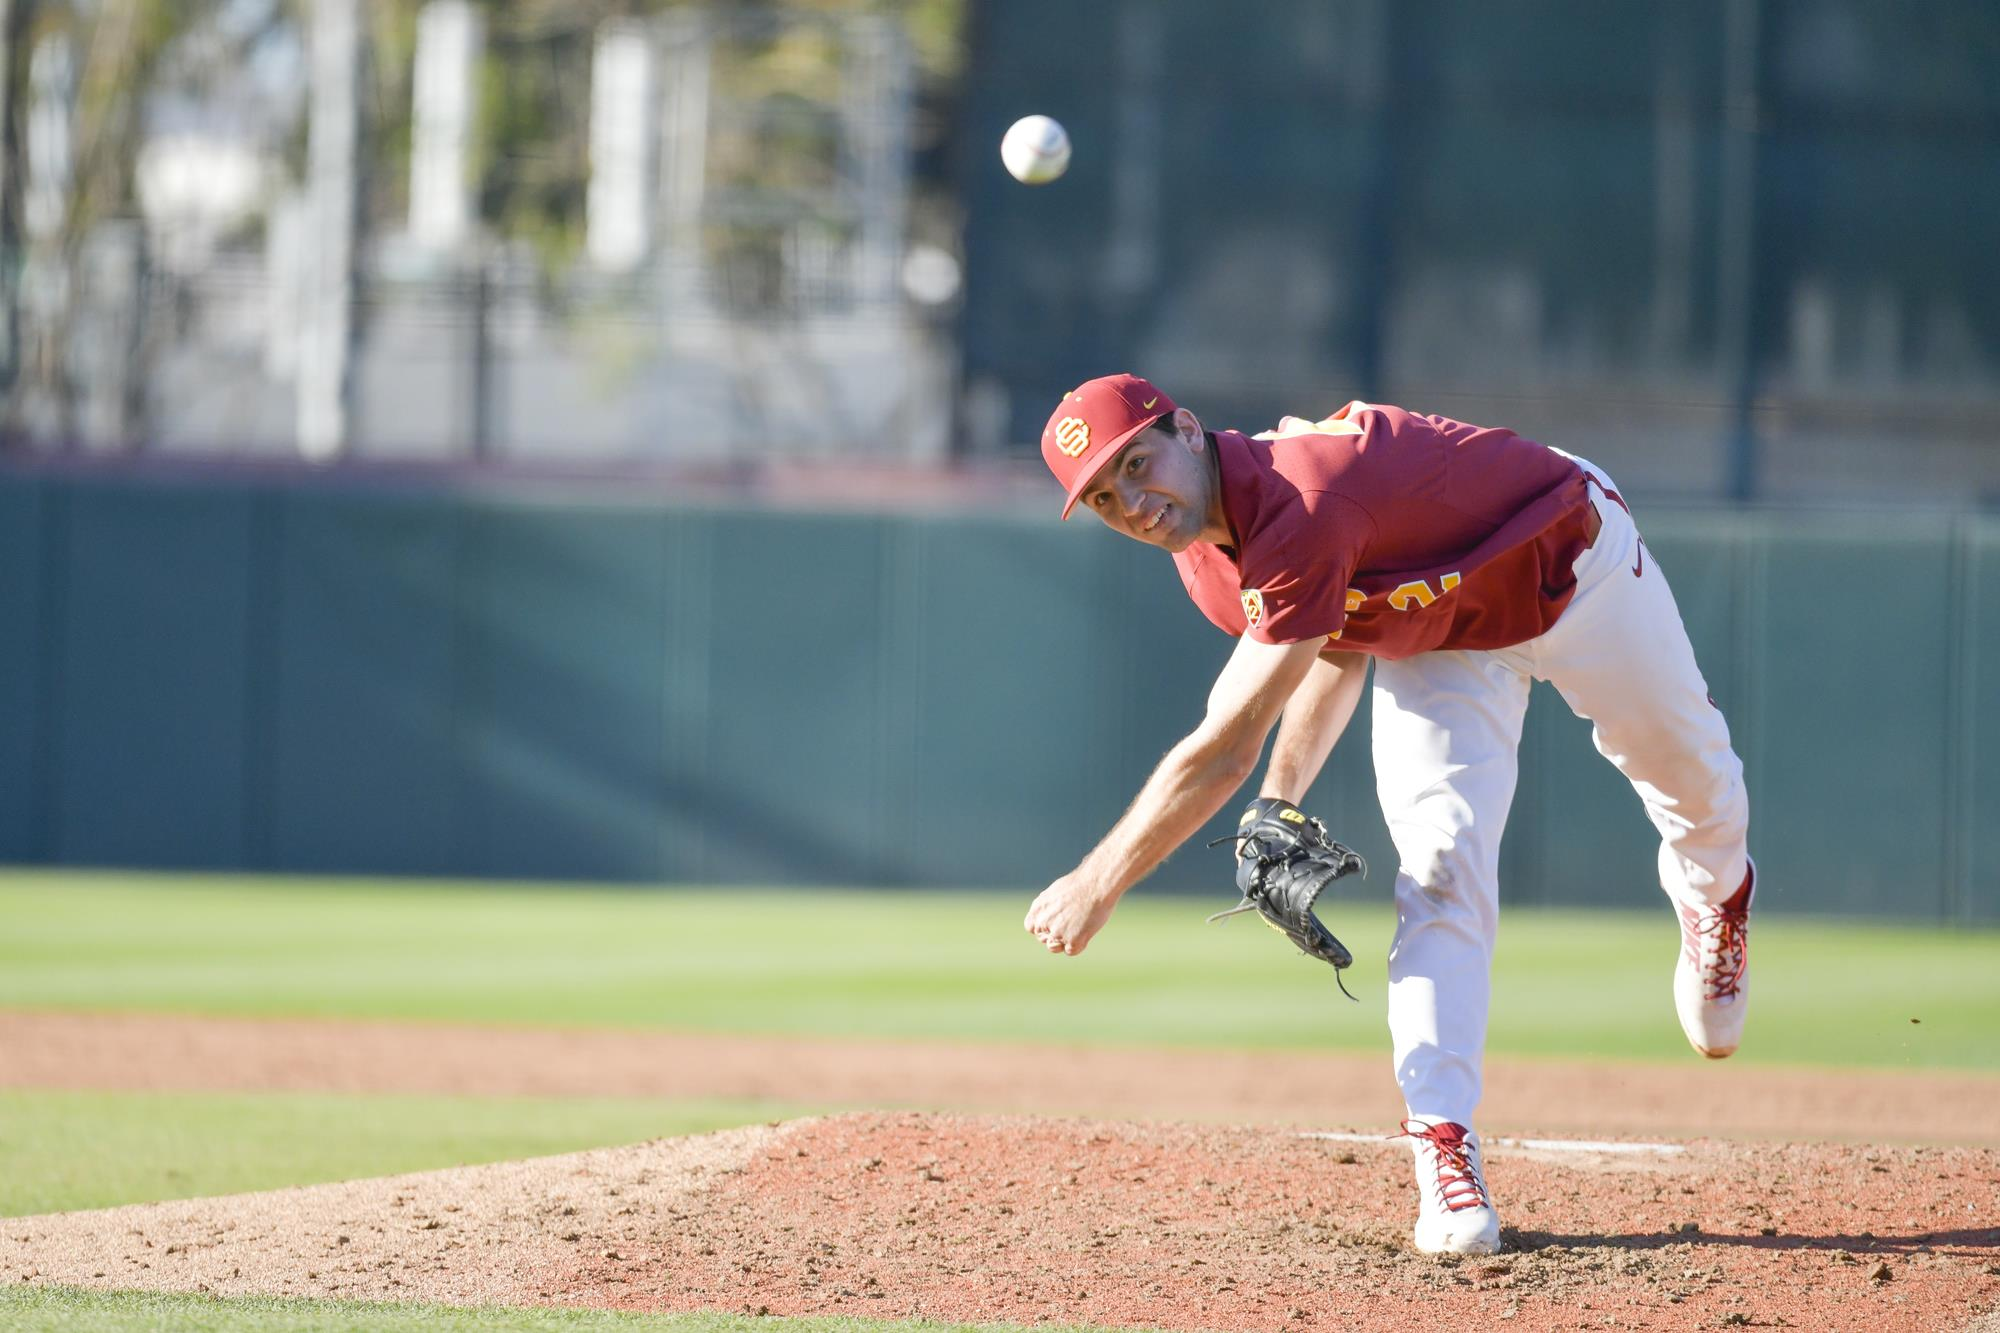 Usc_baseball_utah_valley_2018_mcgillen_g2_jmp6982